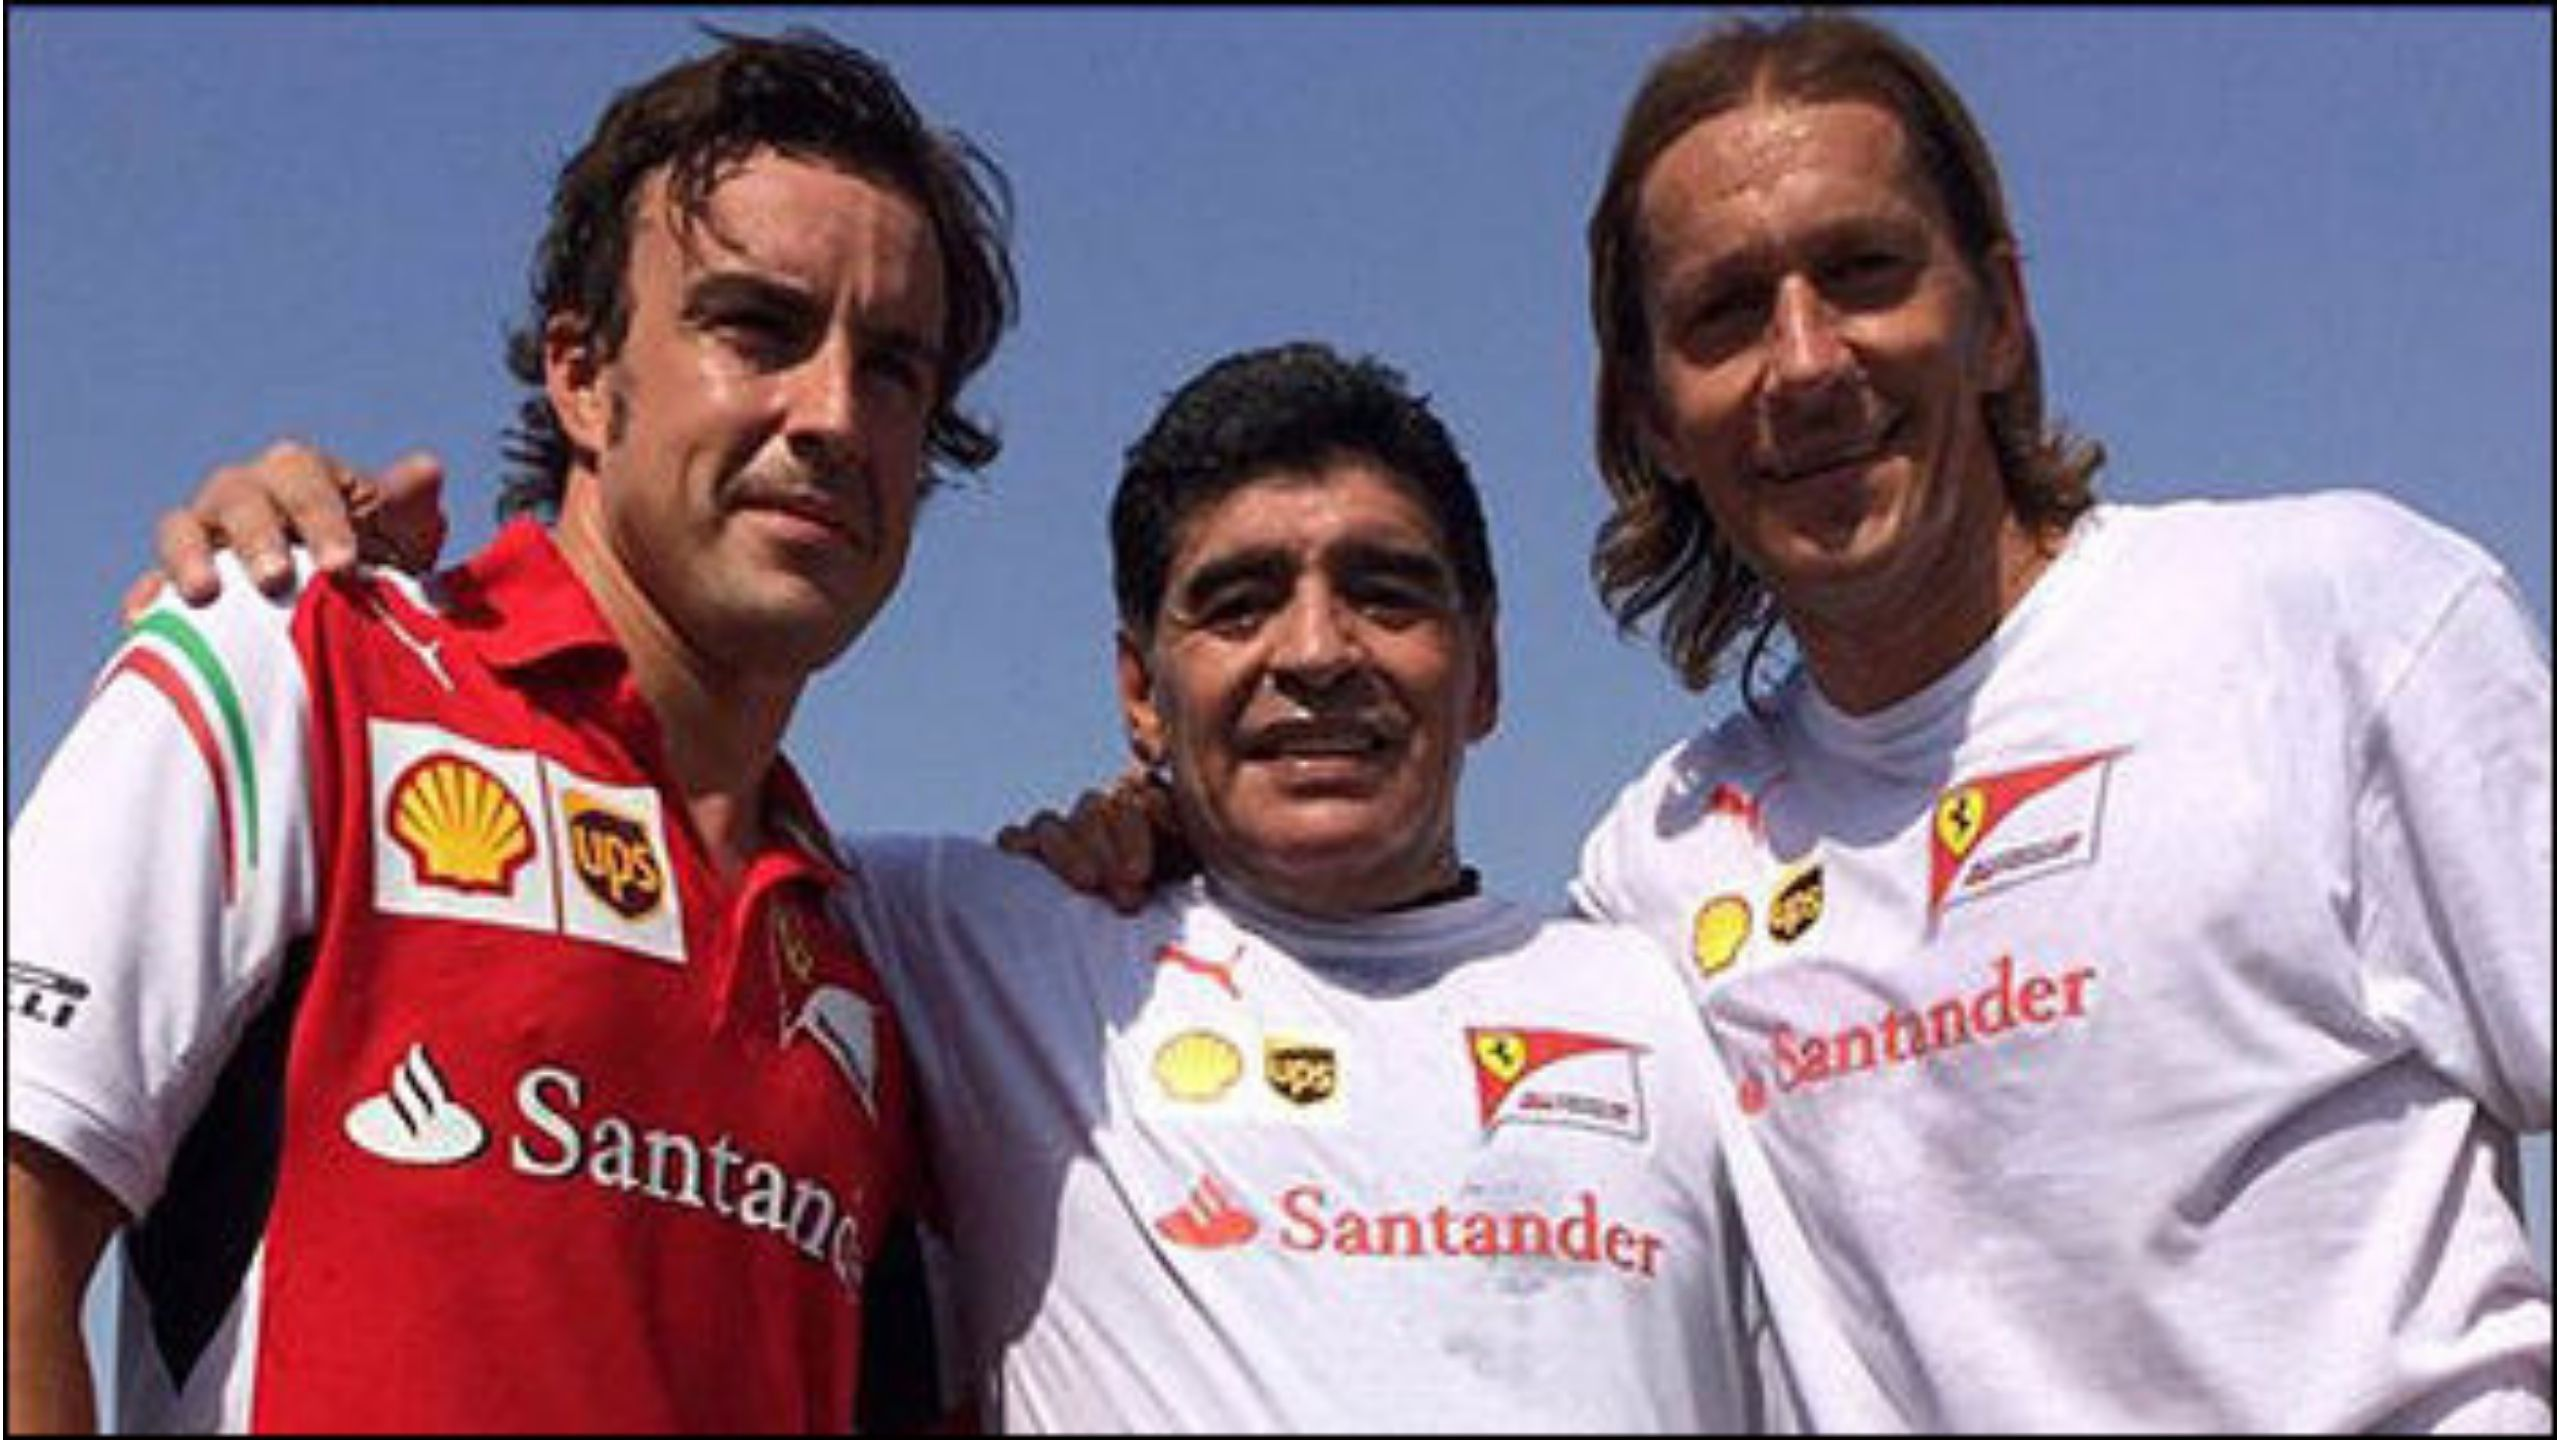 The day Diego Maradona made two-time F1 champion and Ferrari star Fernando Alonso play football with him